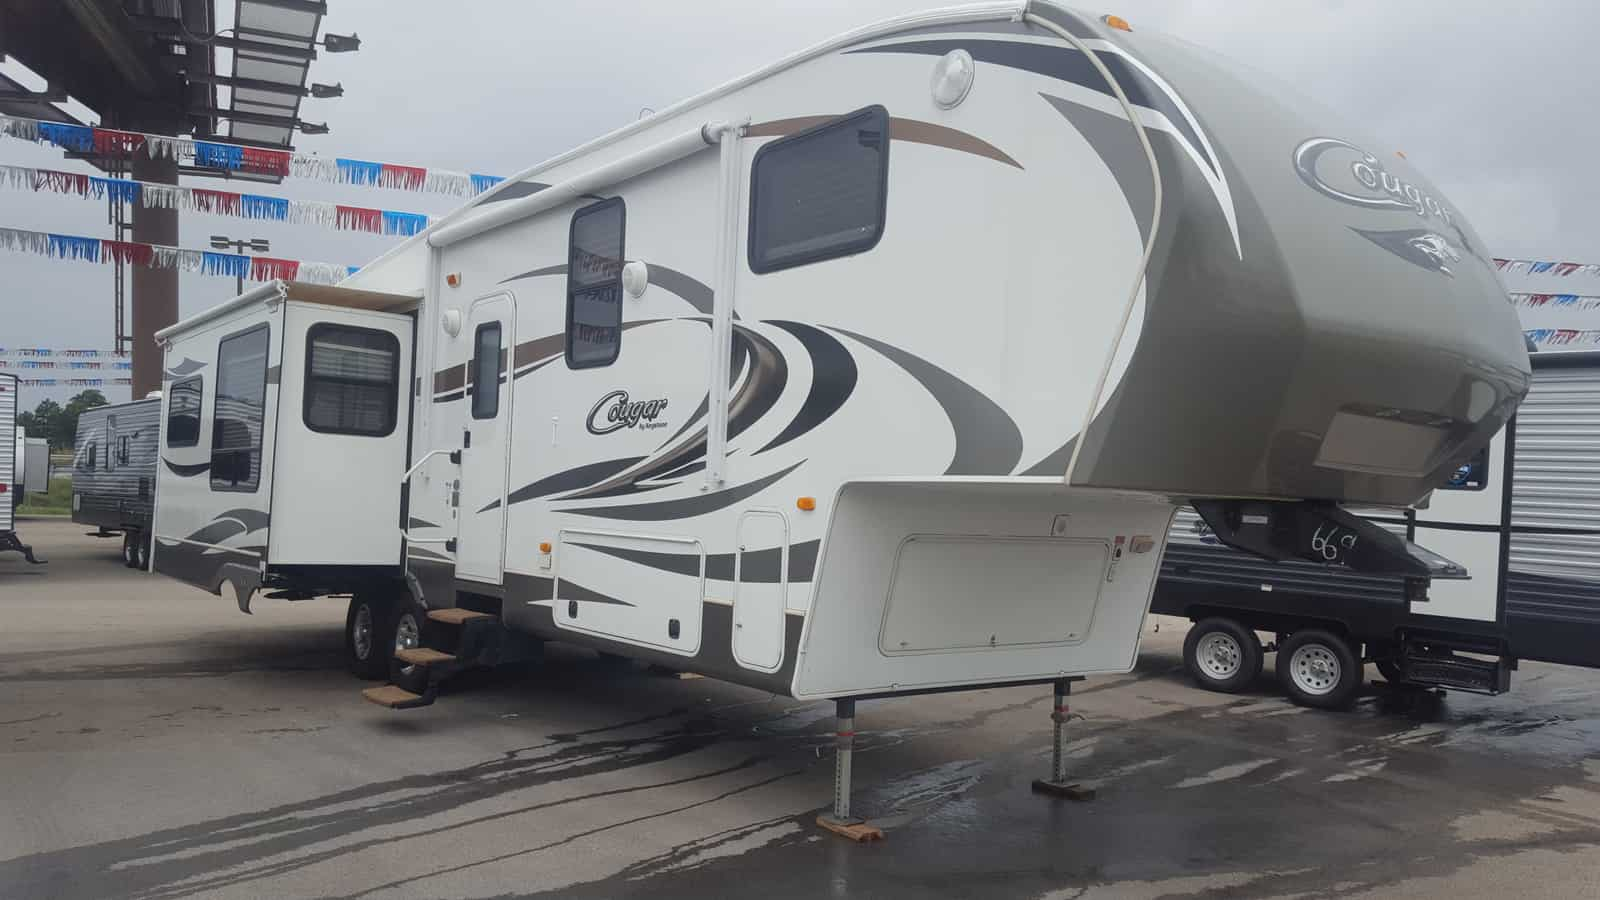 USED 2012 Keystone COUGAR 327RES - American RV